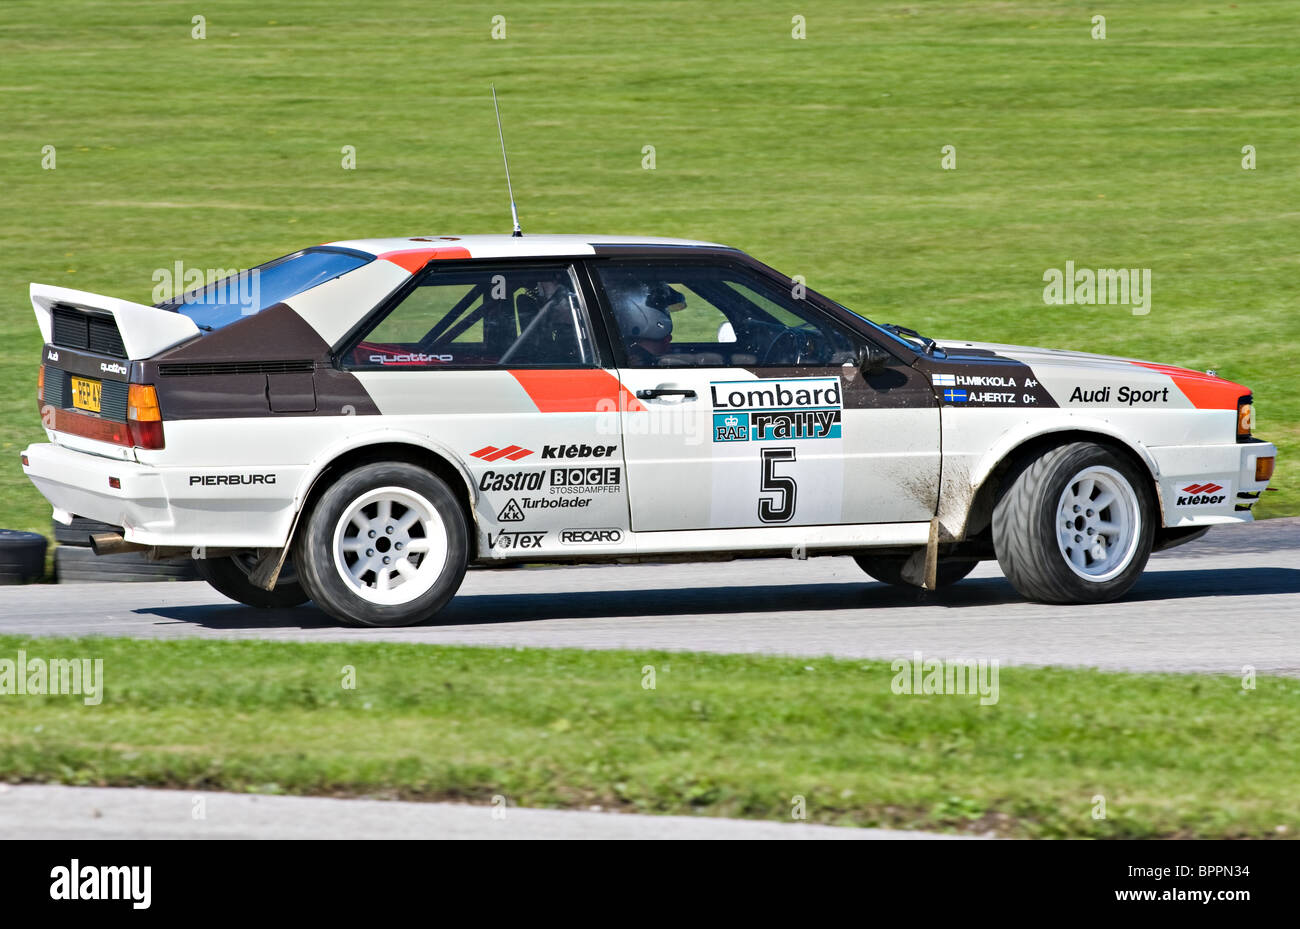 audi quattro group b rally car on the rallying track at. Black Bedroom Furniture Sets. Home Design Ideas